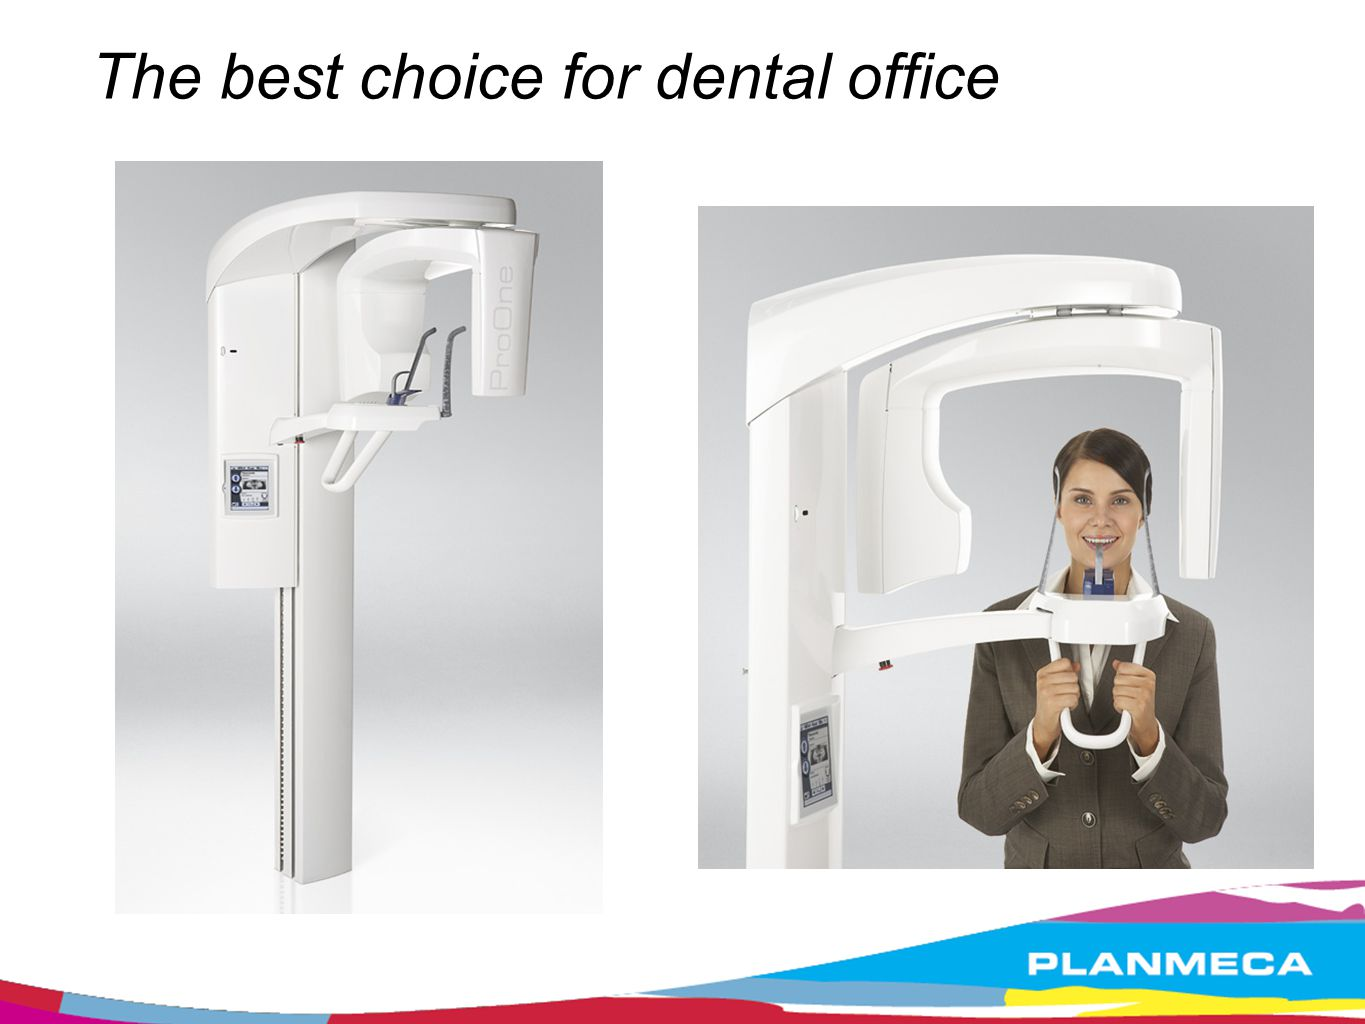 Easy to operate Open and easy patient access Side entry and open view No mirror, no traumatic view of injuries Triple laser beam system for accurate alignment